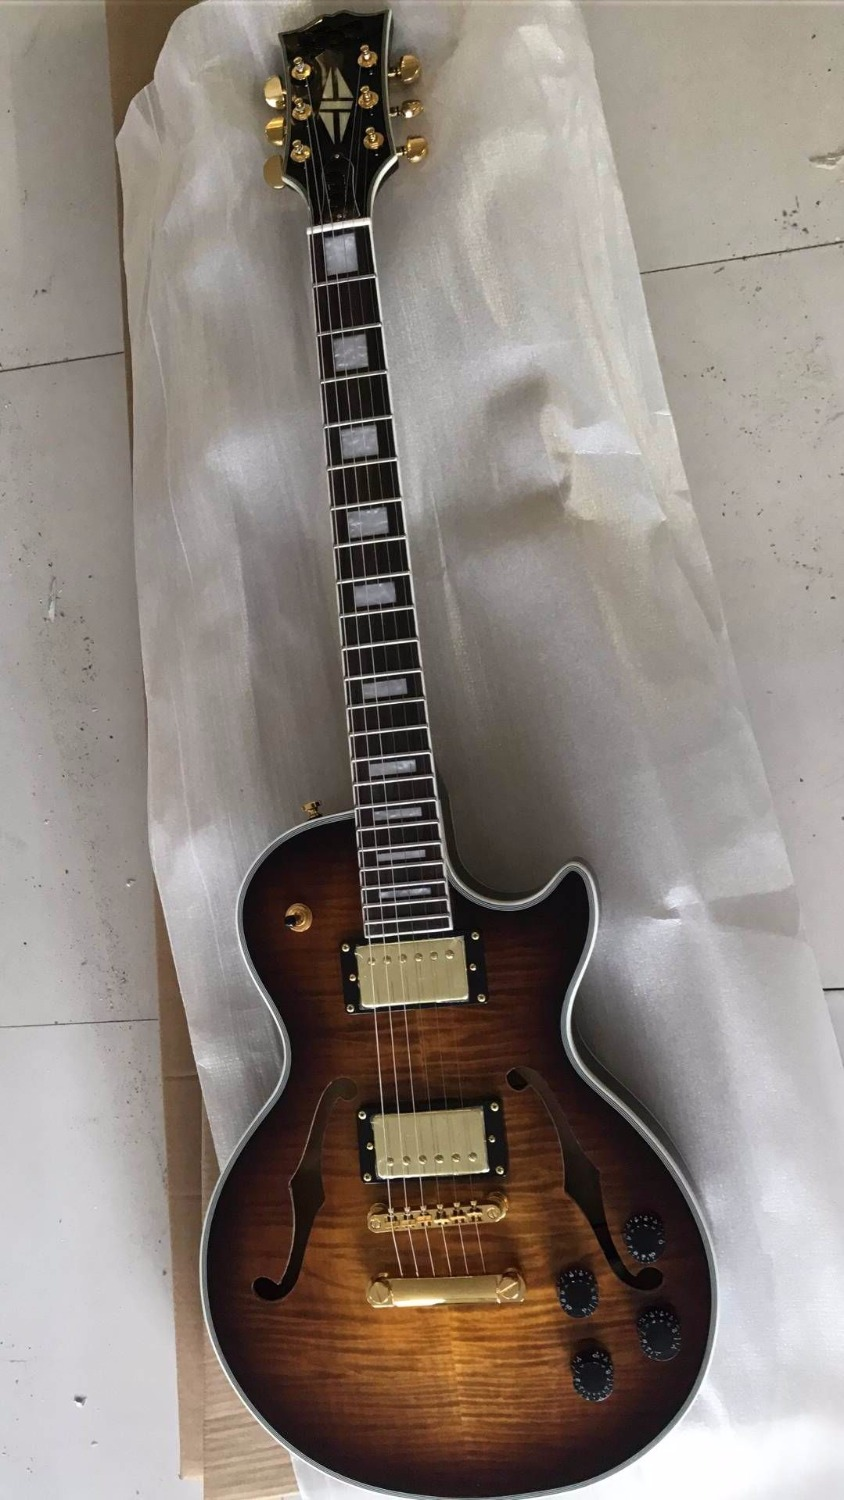 Wholesale Cnbald LP Custom Shop Jazz Electric Guitar Mahogany Semi Hollow Body In Amber Brown Burst 170920 wholesale cnbald 1959 custom signature electric guitar with bridge bigsby 20th anniversary in black 120323